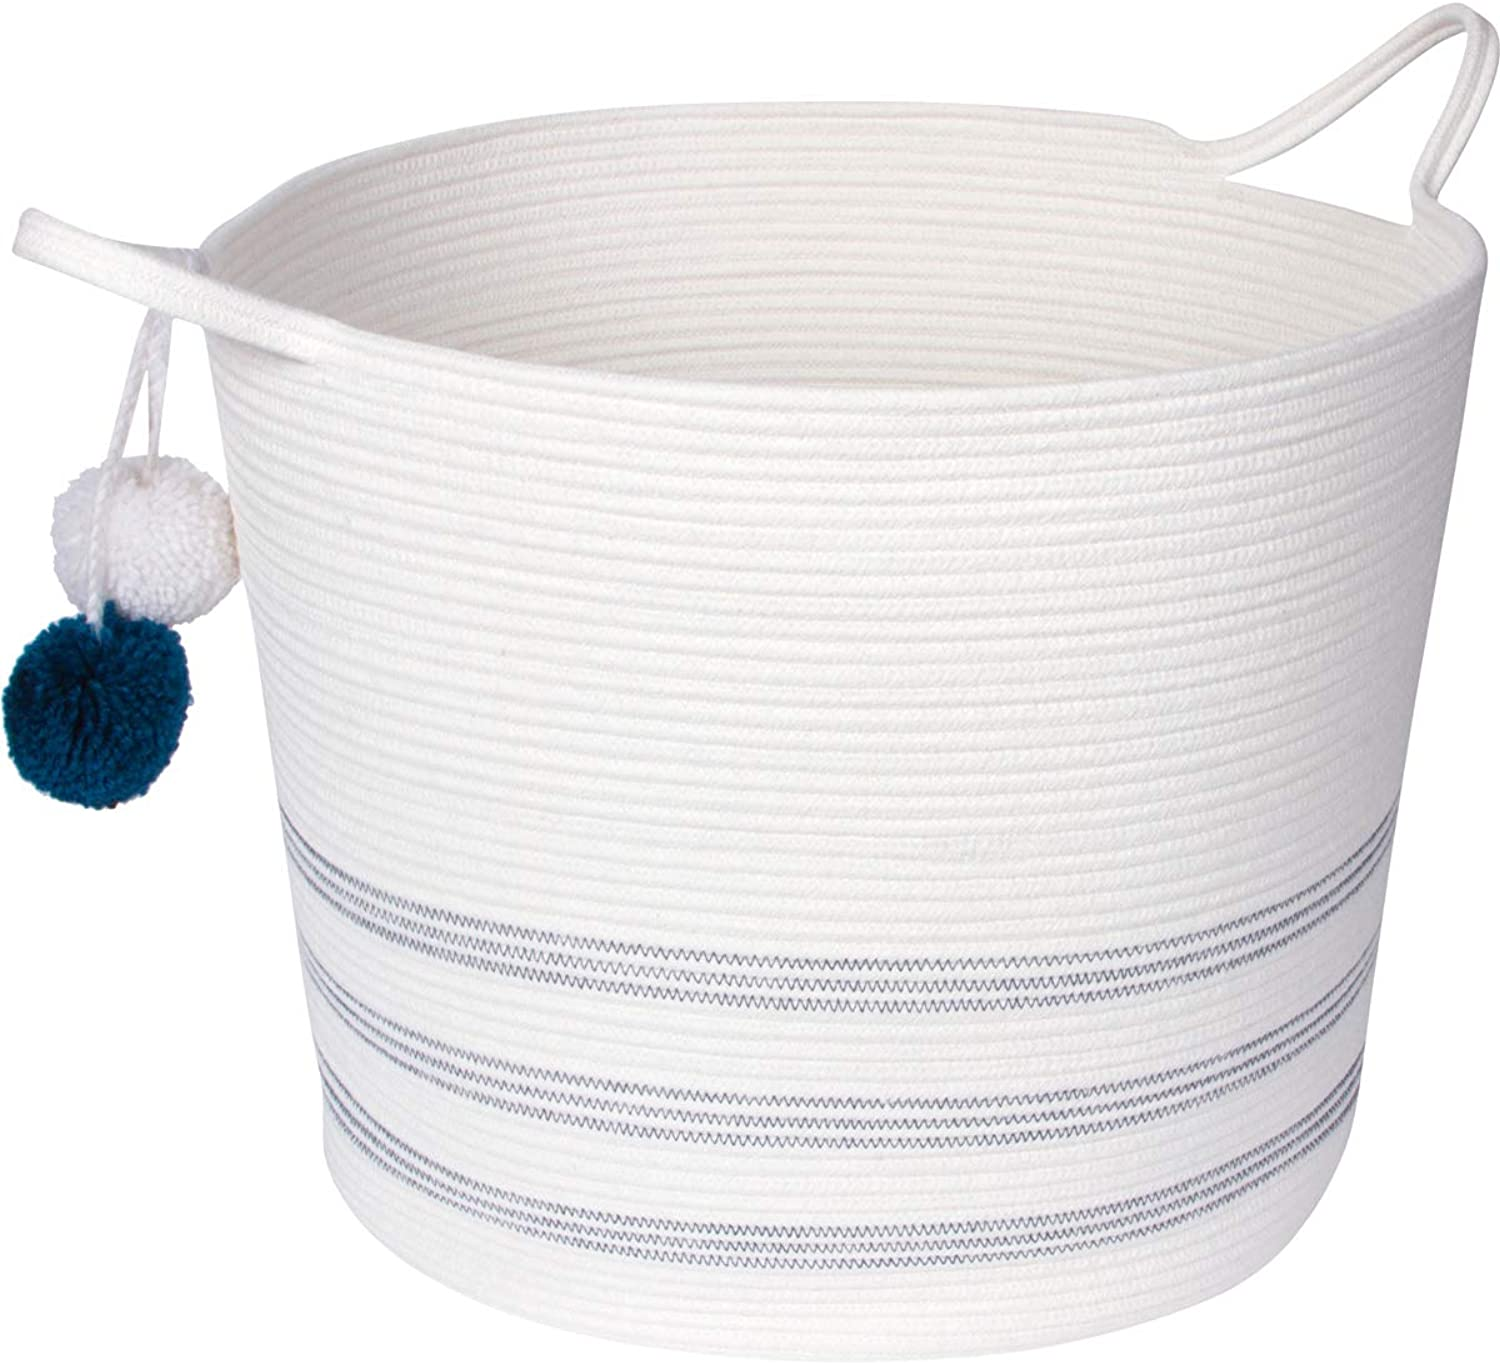 Sweetzer & orange Extra Large Woven Cotton Rope Storage Basket with Pom-Poms - 16.5 x20.5  - Blanket Storage Baskets, Laundry and Toy Storage, Nursery Hamper - Off White Navy XXL for Living Room